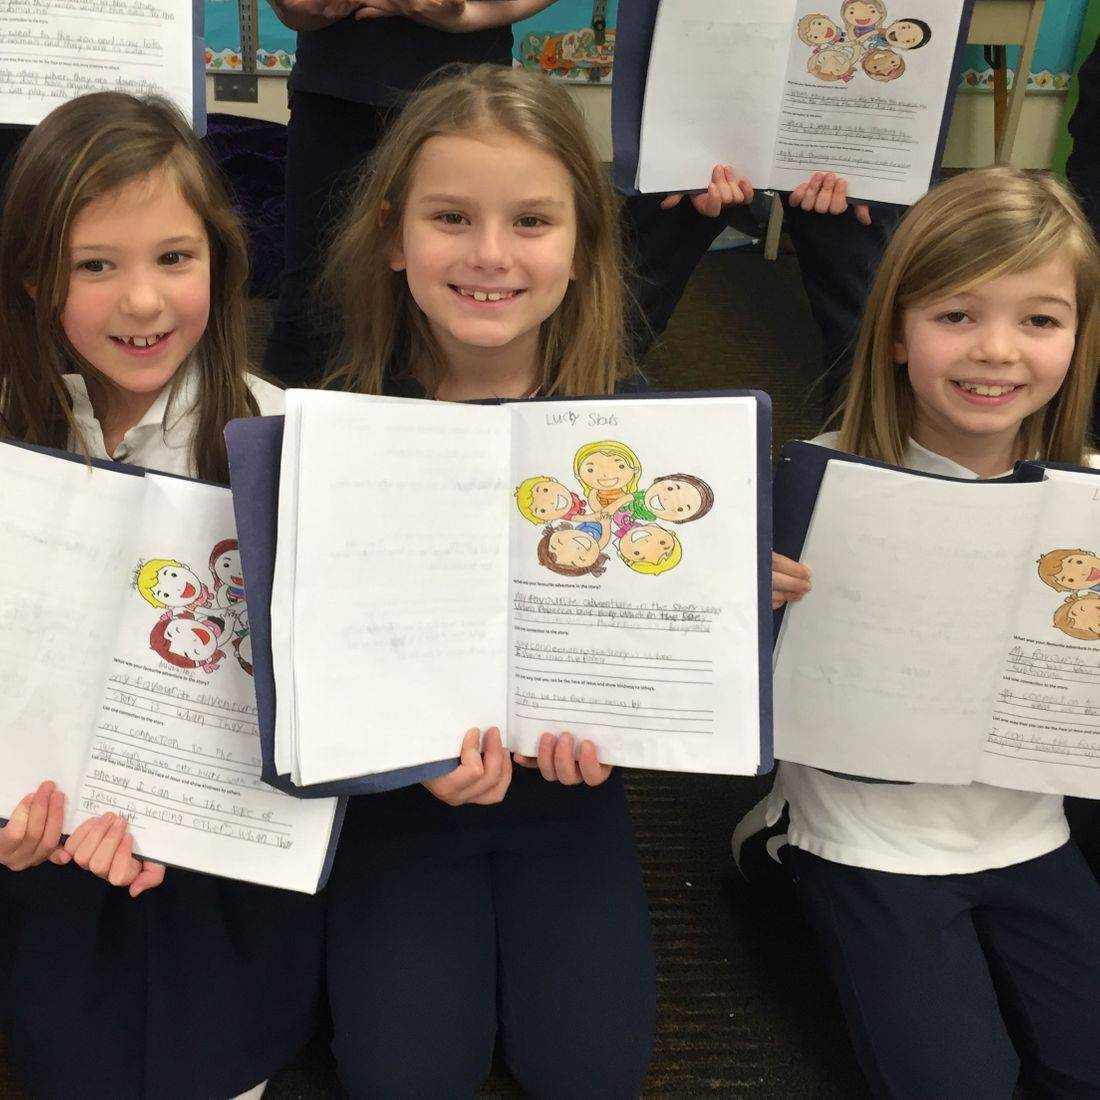 Grade 2 girls proud of their colouring and writing about the book Lucky Stars by Daniella Grsic